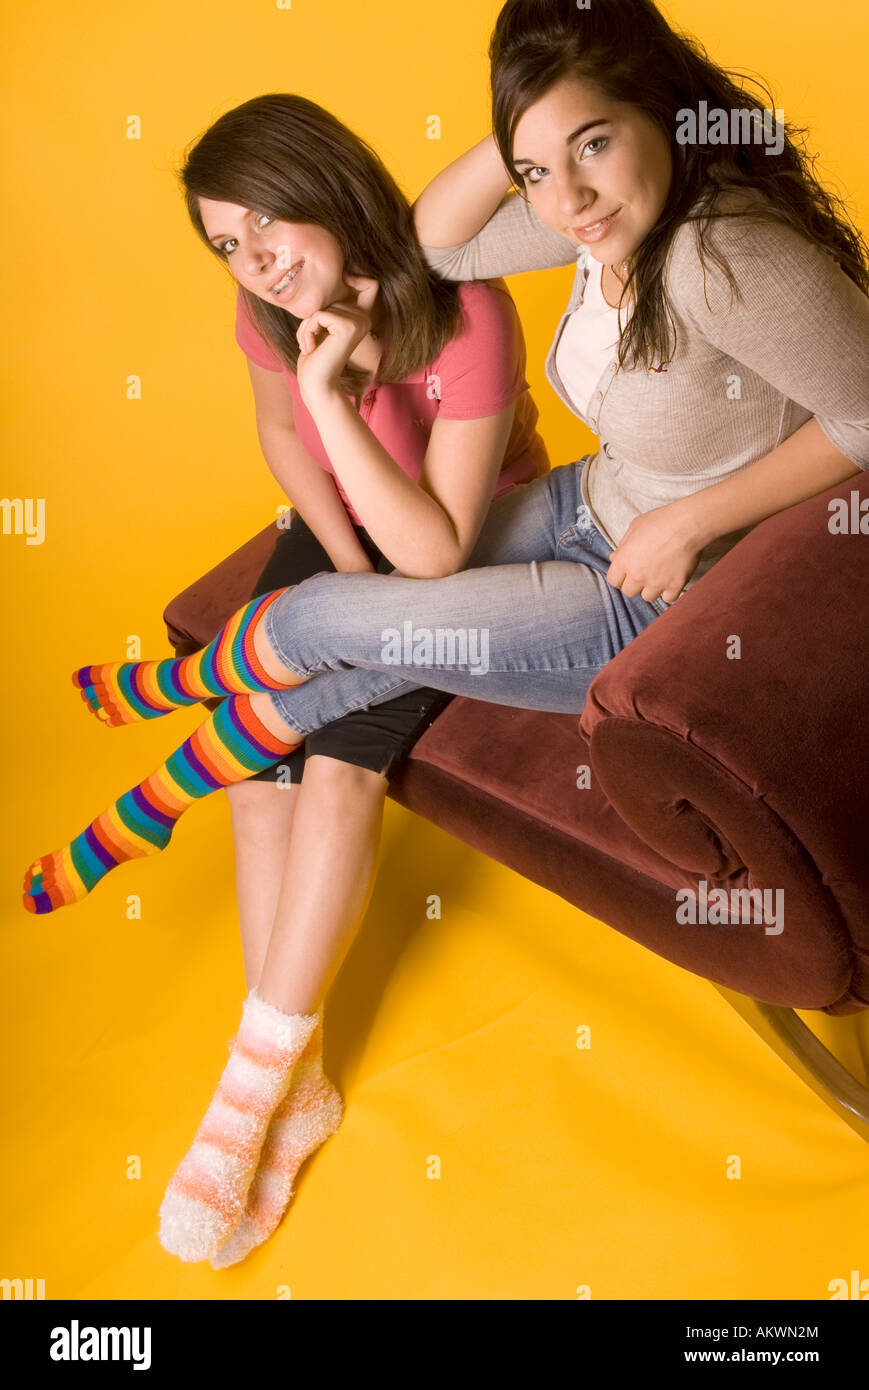 Two Teen Girls (15-17) Wearing Colorful Mismatched Socks